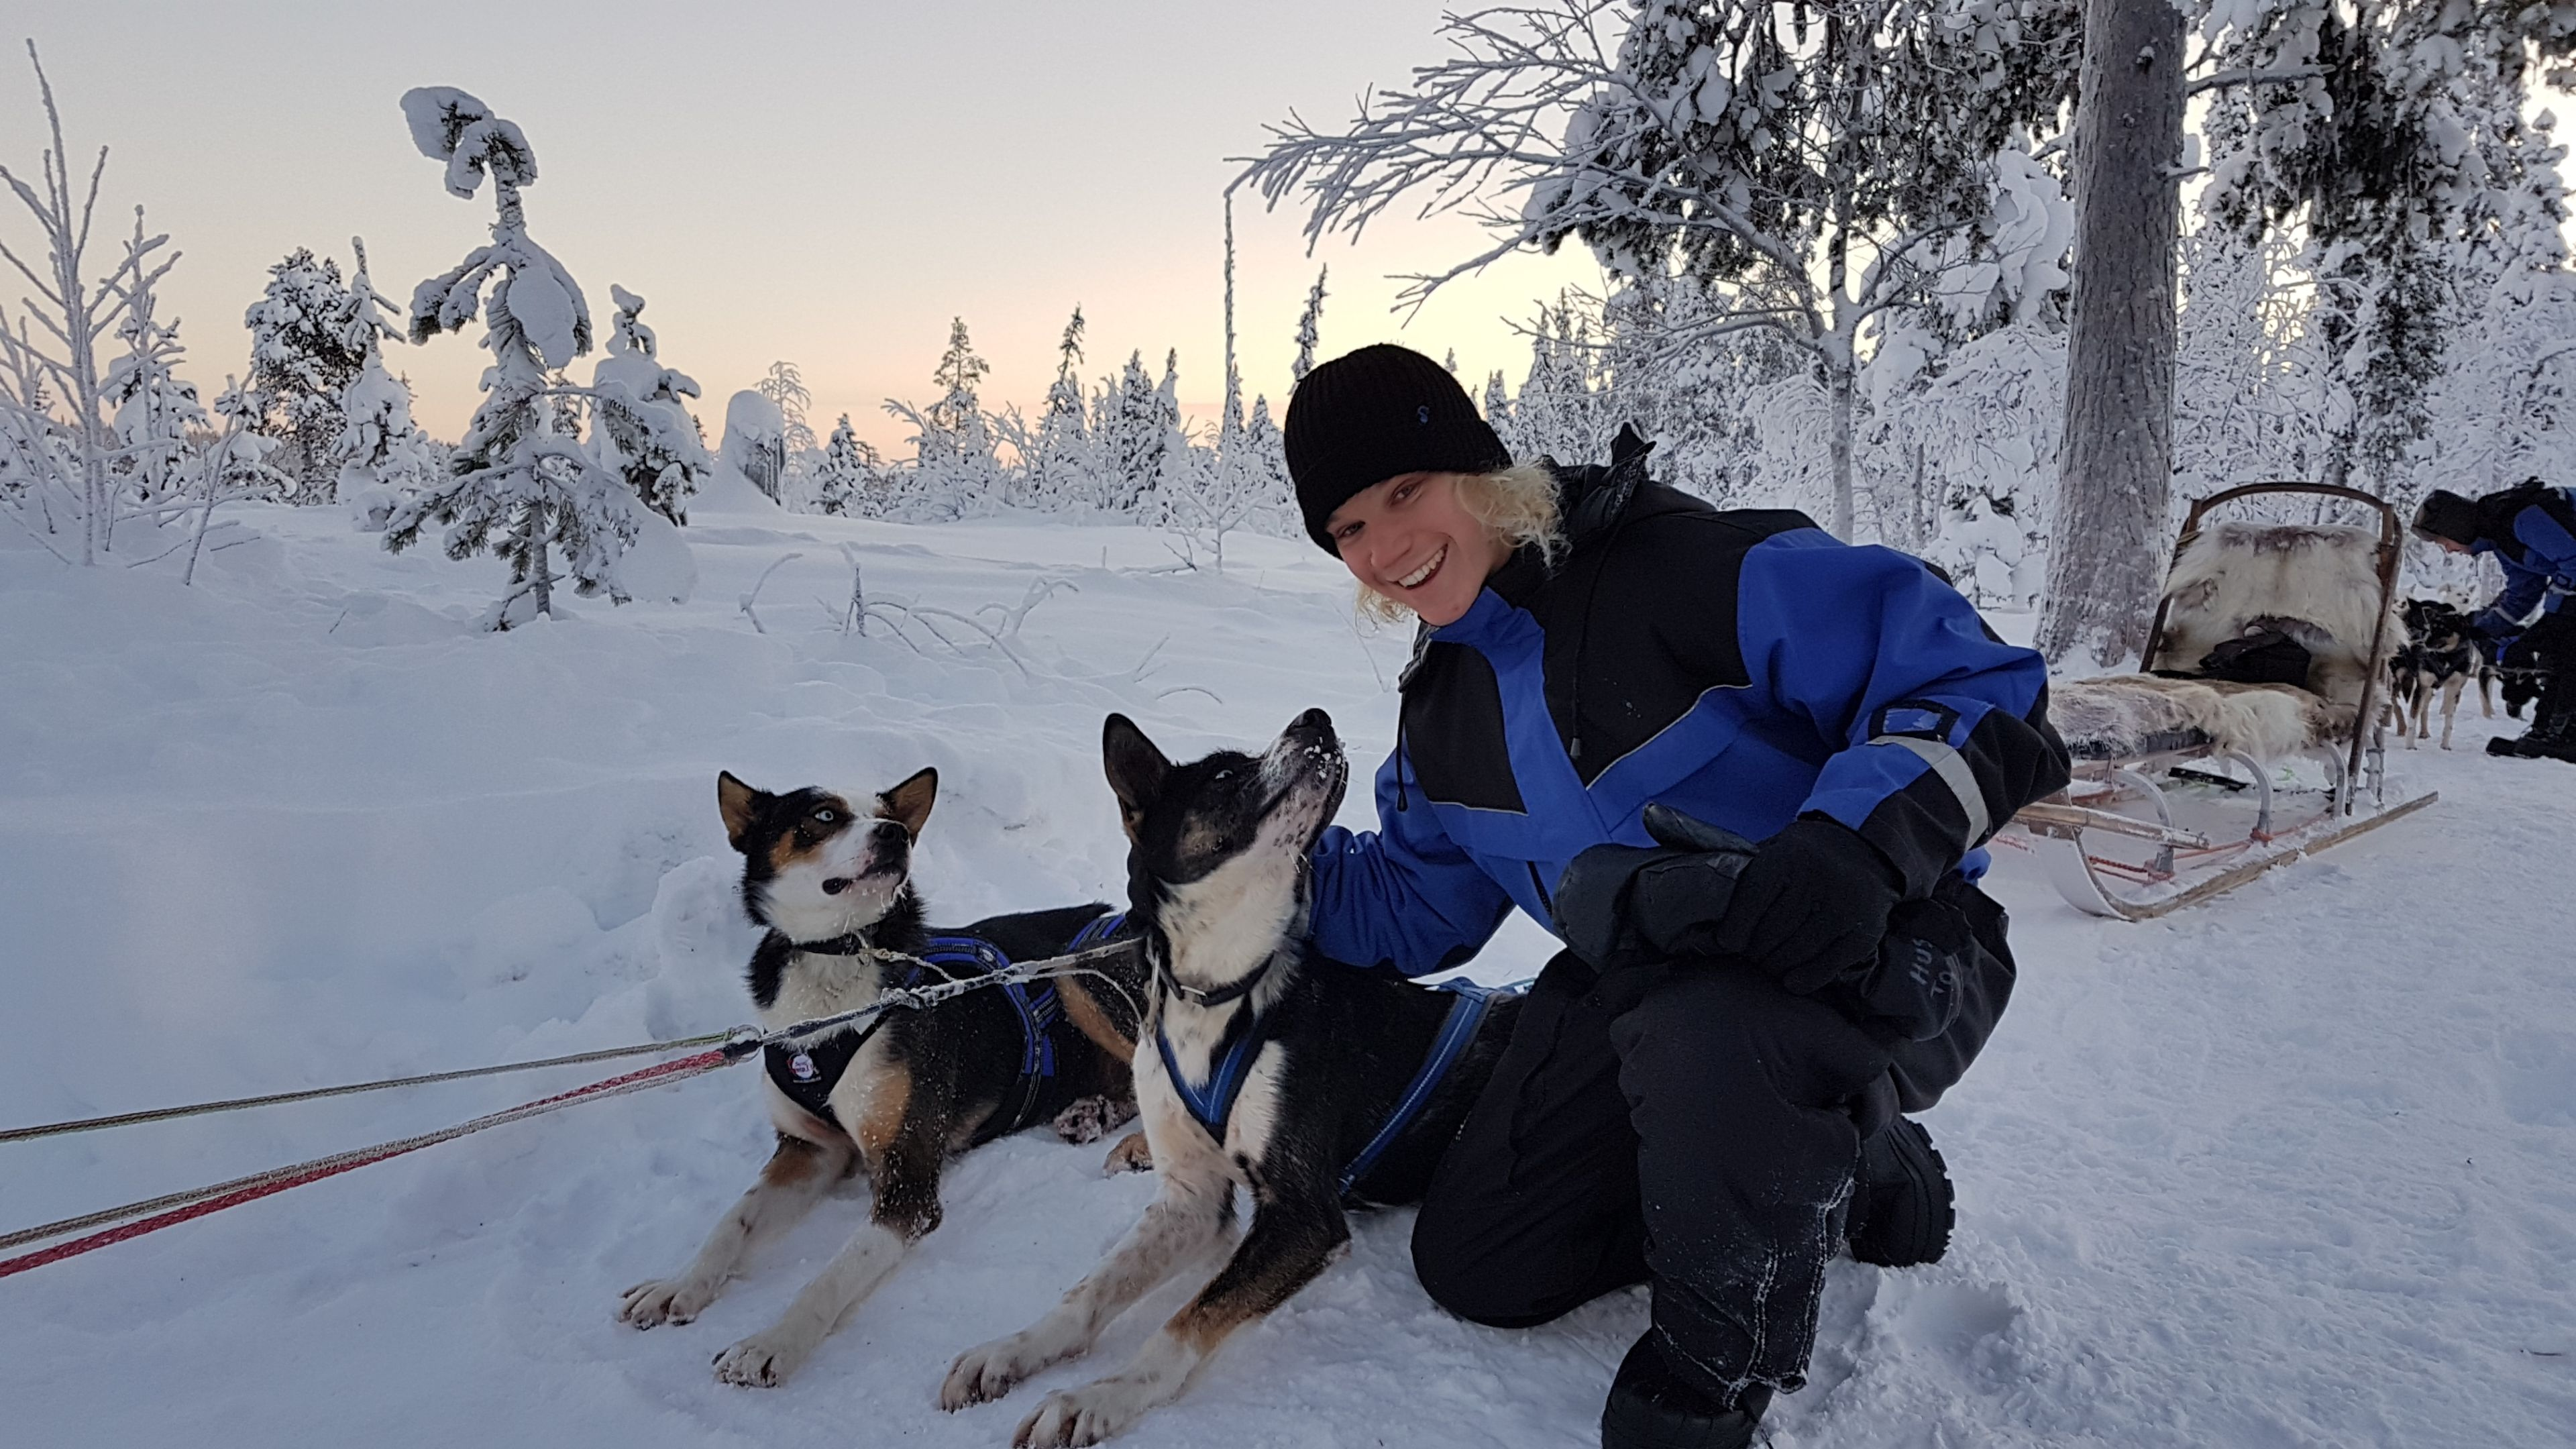 Study Abroad student smiling a camera in snow covered Sweden with a dog sled in background